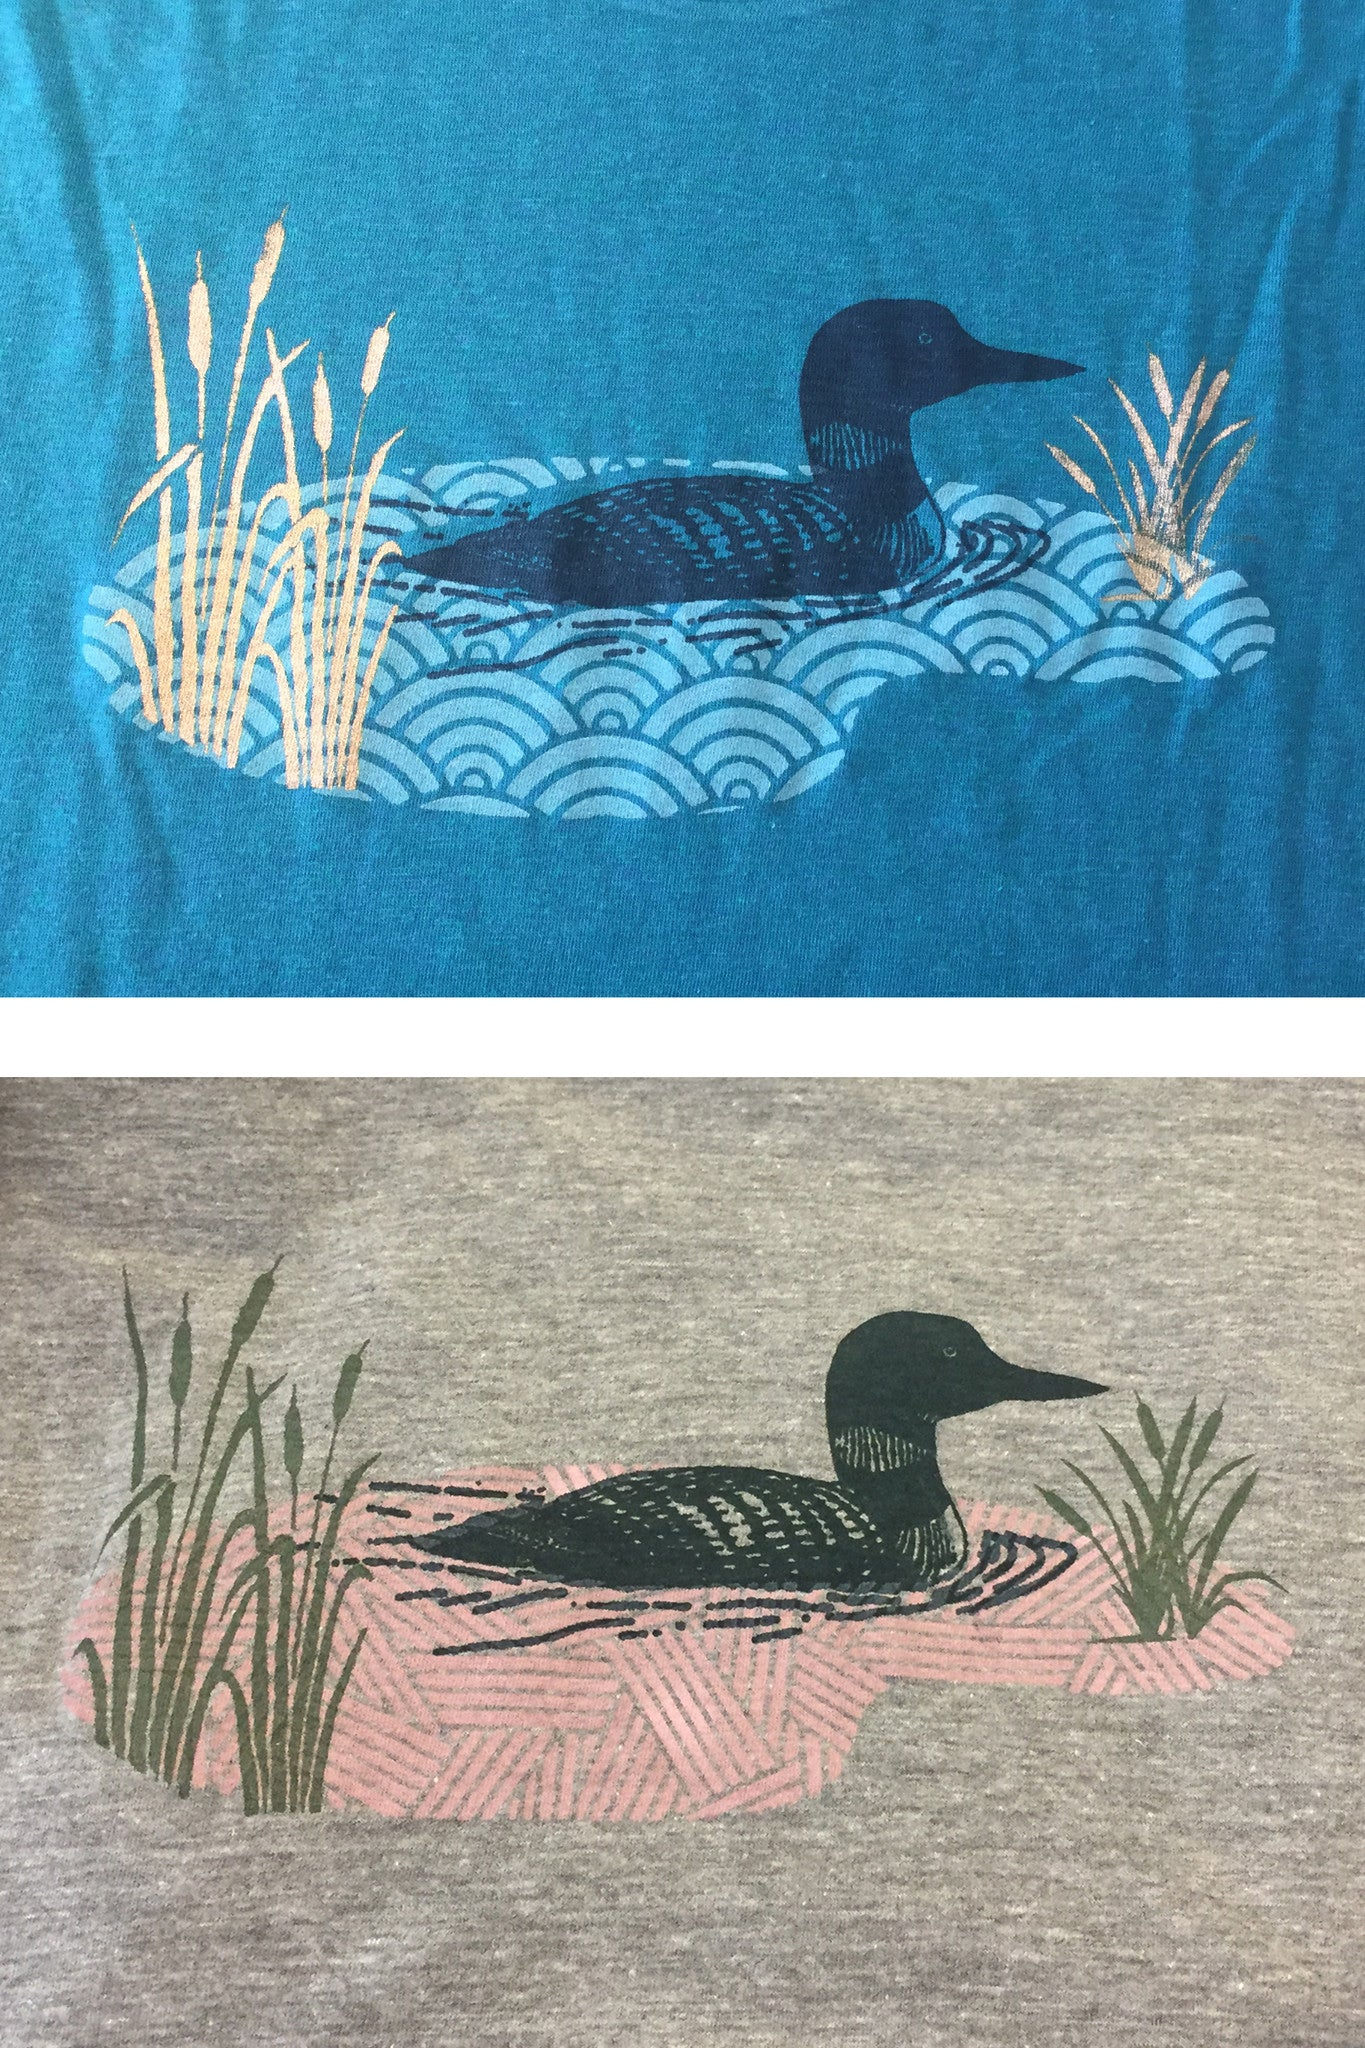 loon and lake printed detail